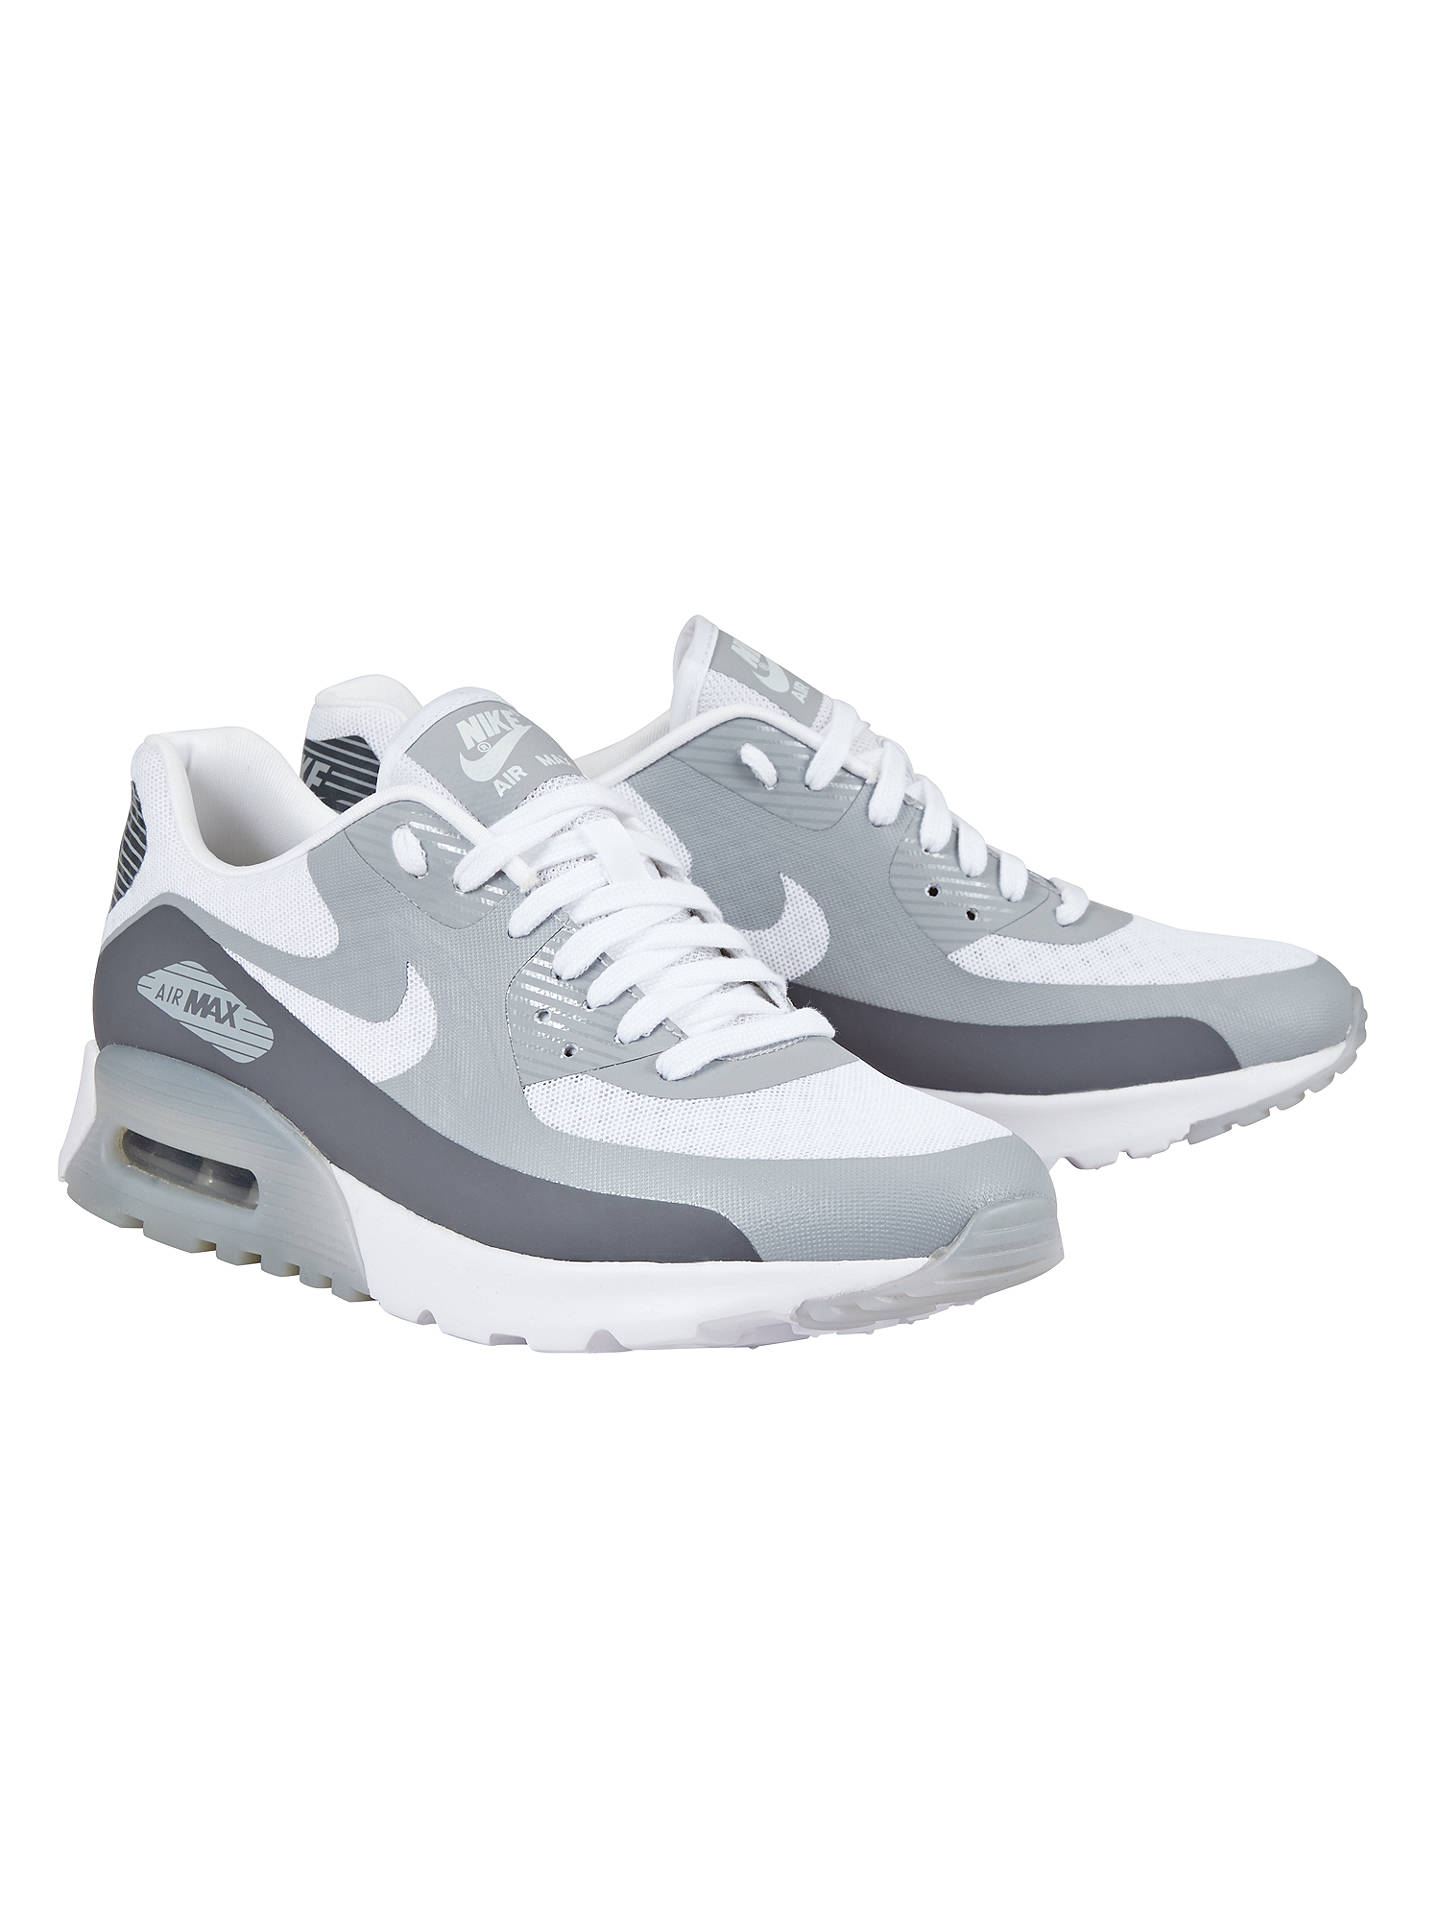 e19df24b43 ... Buy Nike Air Max 90 Ultra Breathe Women's Trainers, White/Wolf Grey, 3  ...